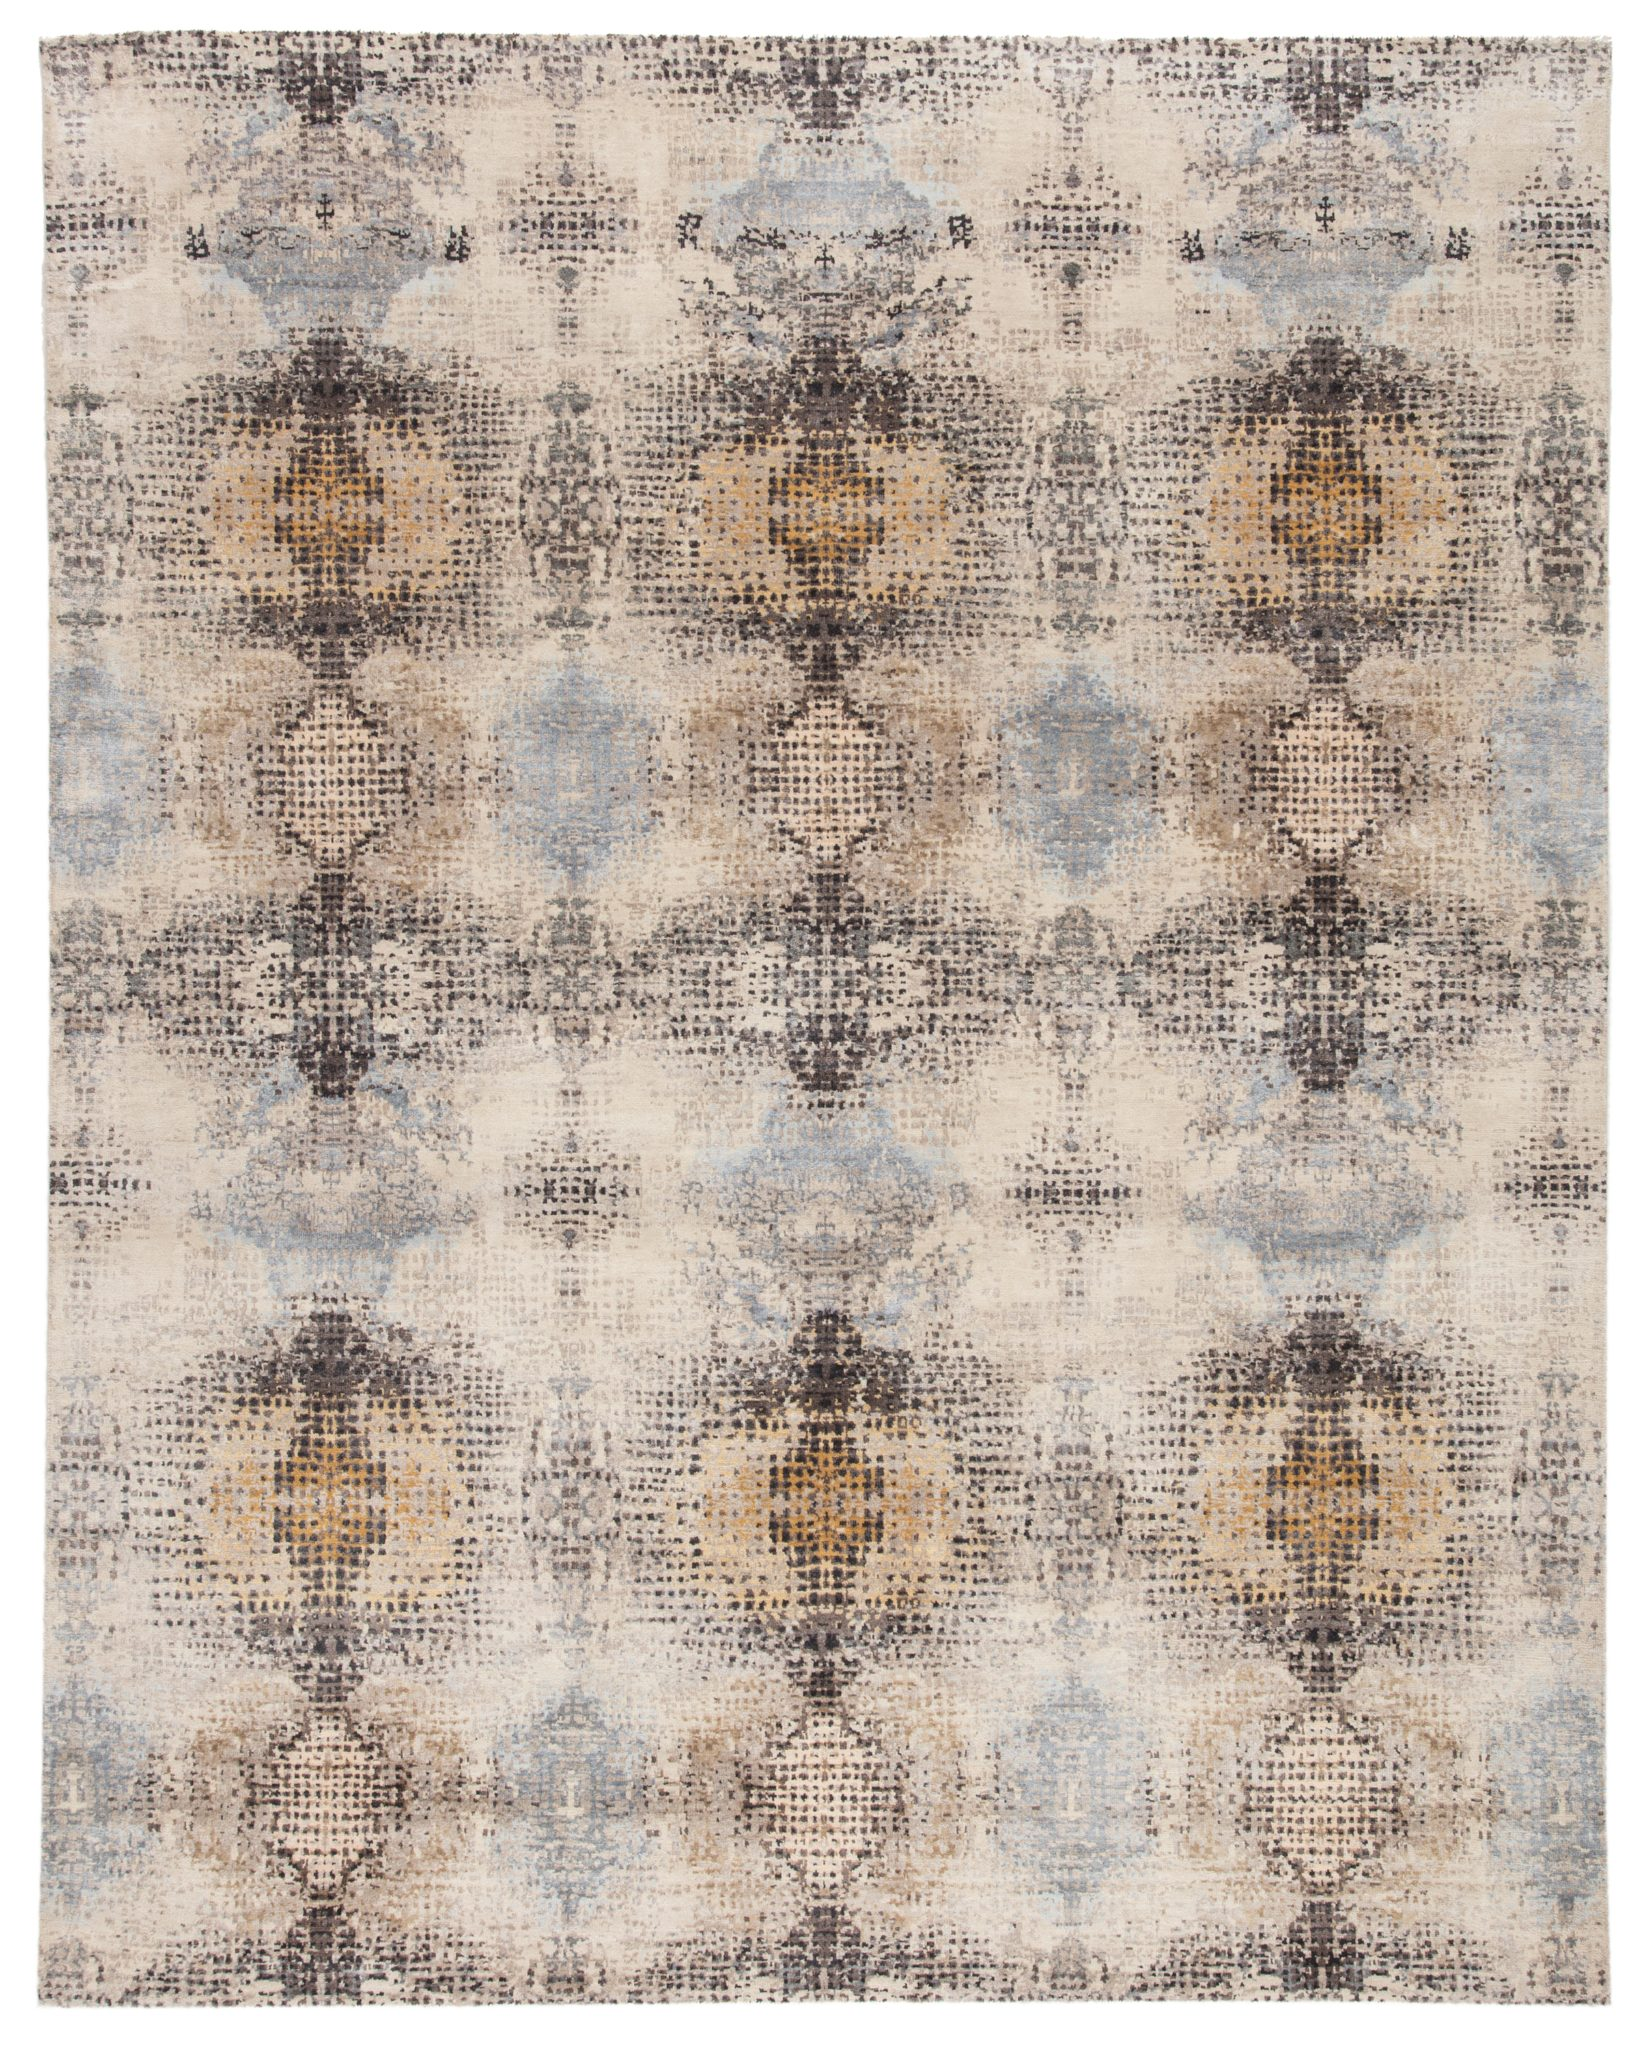 Jaipur Living's Lucida rug is part of the Kaleida by Kavi collection. Made of wool and viscose, the rug has a kaleidoscopic design and a soft feel.